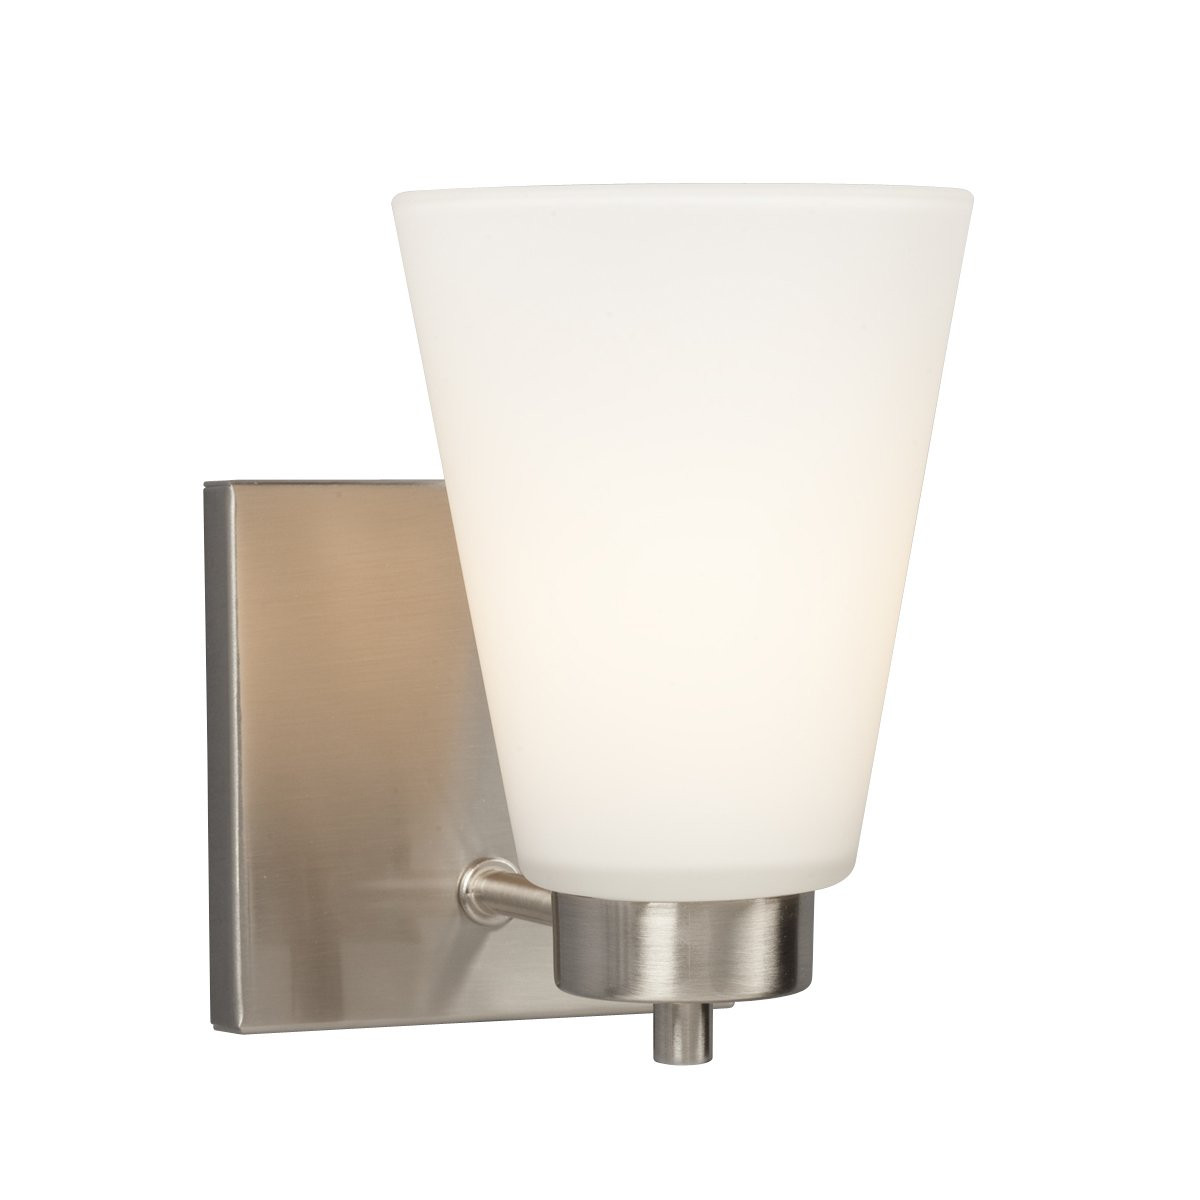 Best ideas about Lowes Bathroom Lighting . Save or Pin Galaxy Lighting Kent Wall Sconce Bathroom Light Now.